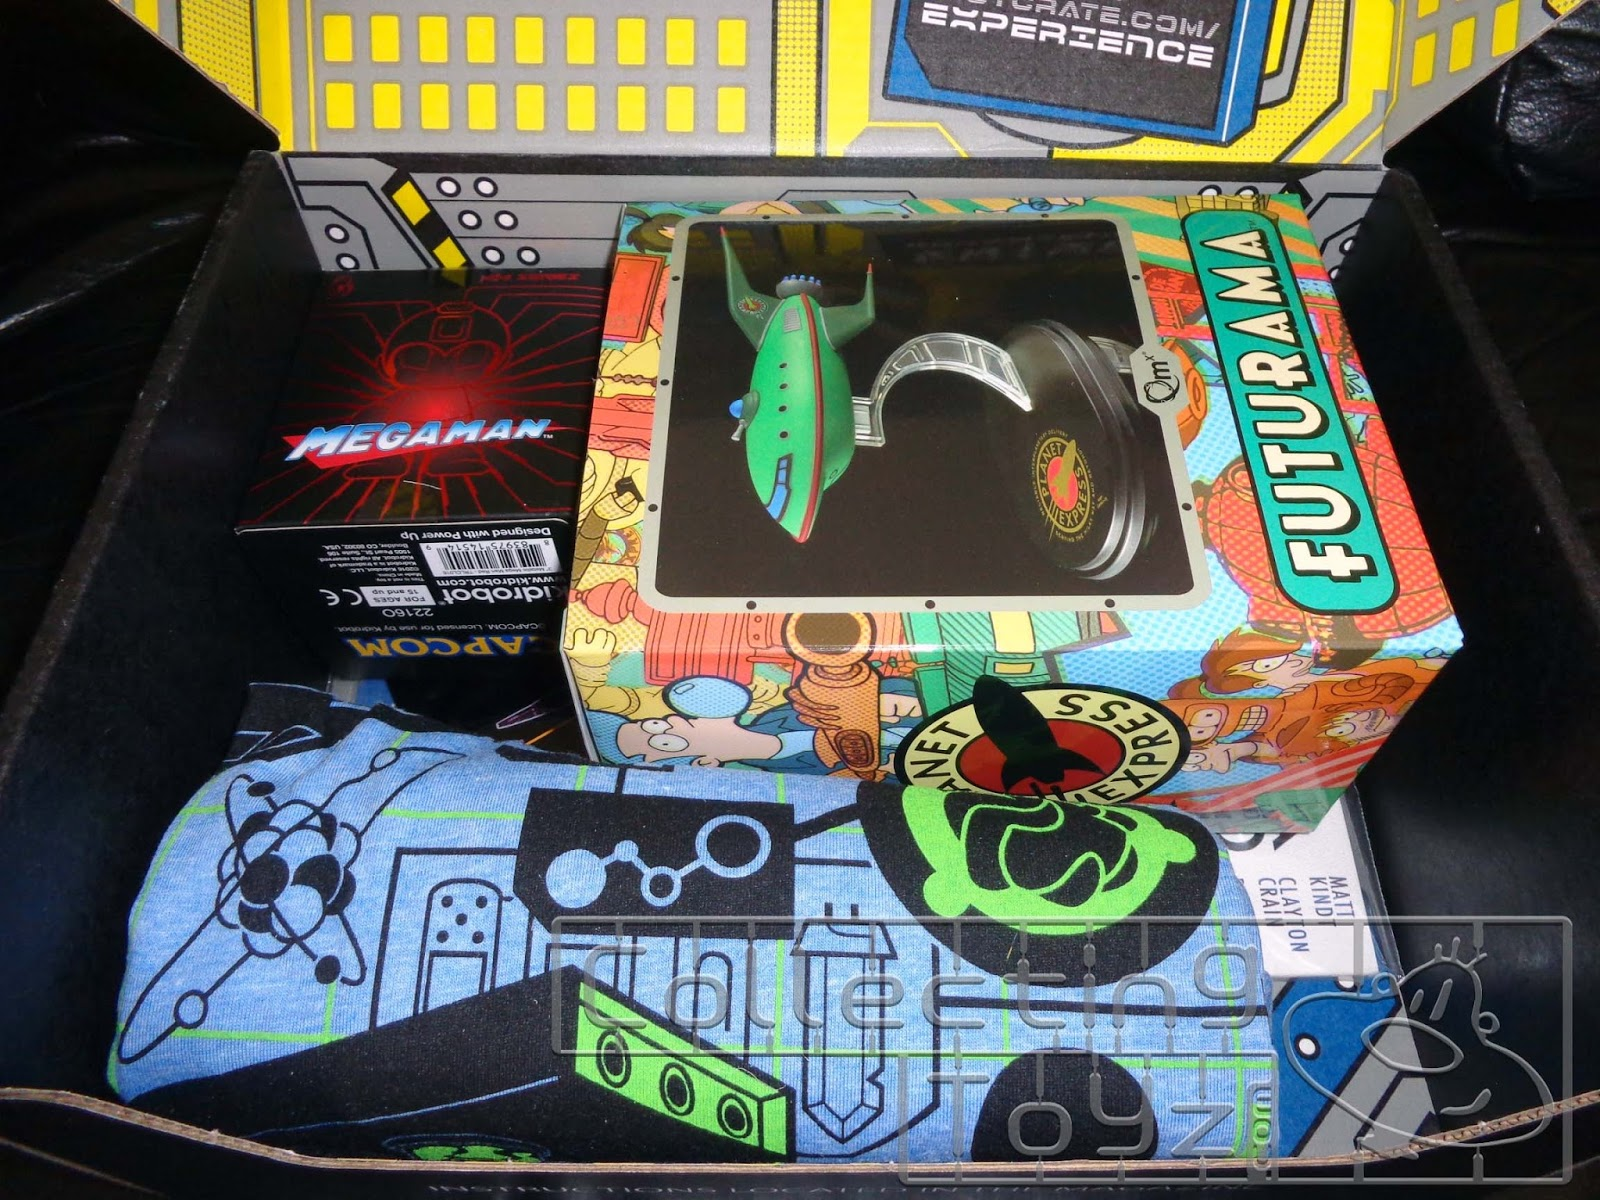 Collecting Toyz Loot Crate Futuristic Unboxing Tony Hawk Circuit Boards By Hexbug Power Axle Set Innovation First Heres What You See Once Flip Open The Lid On Box Some Cool Looking Things Here Thats For Sure